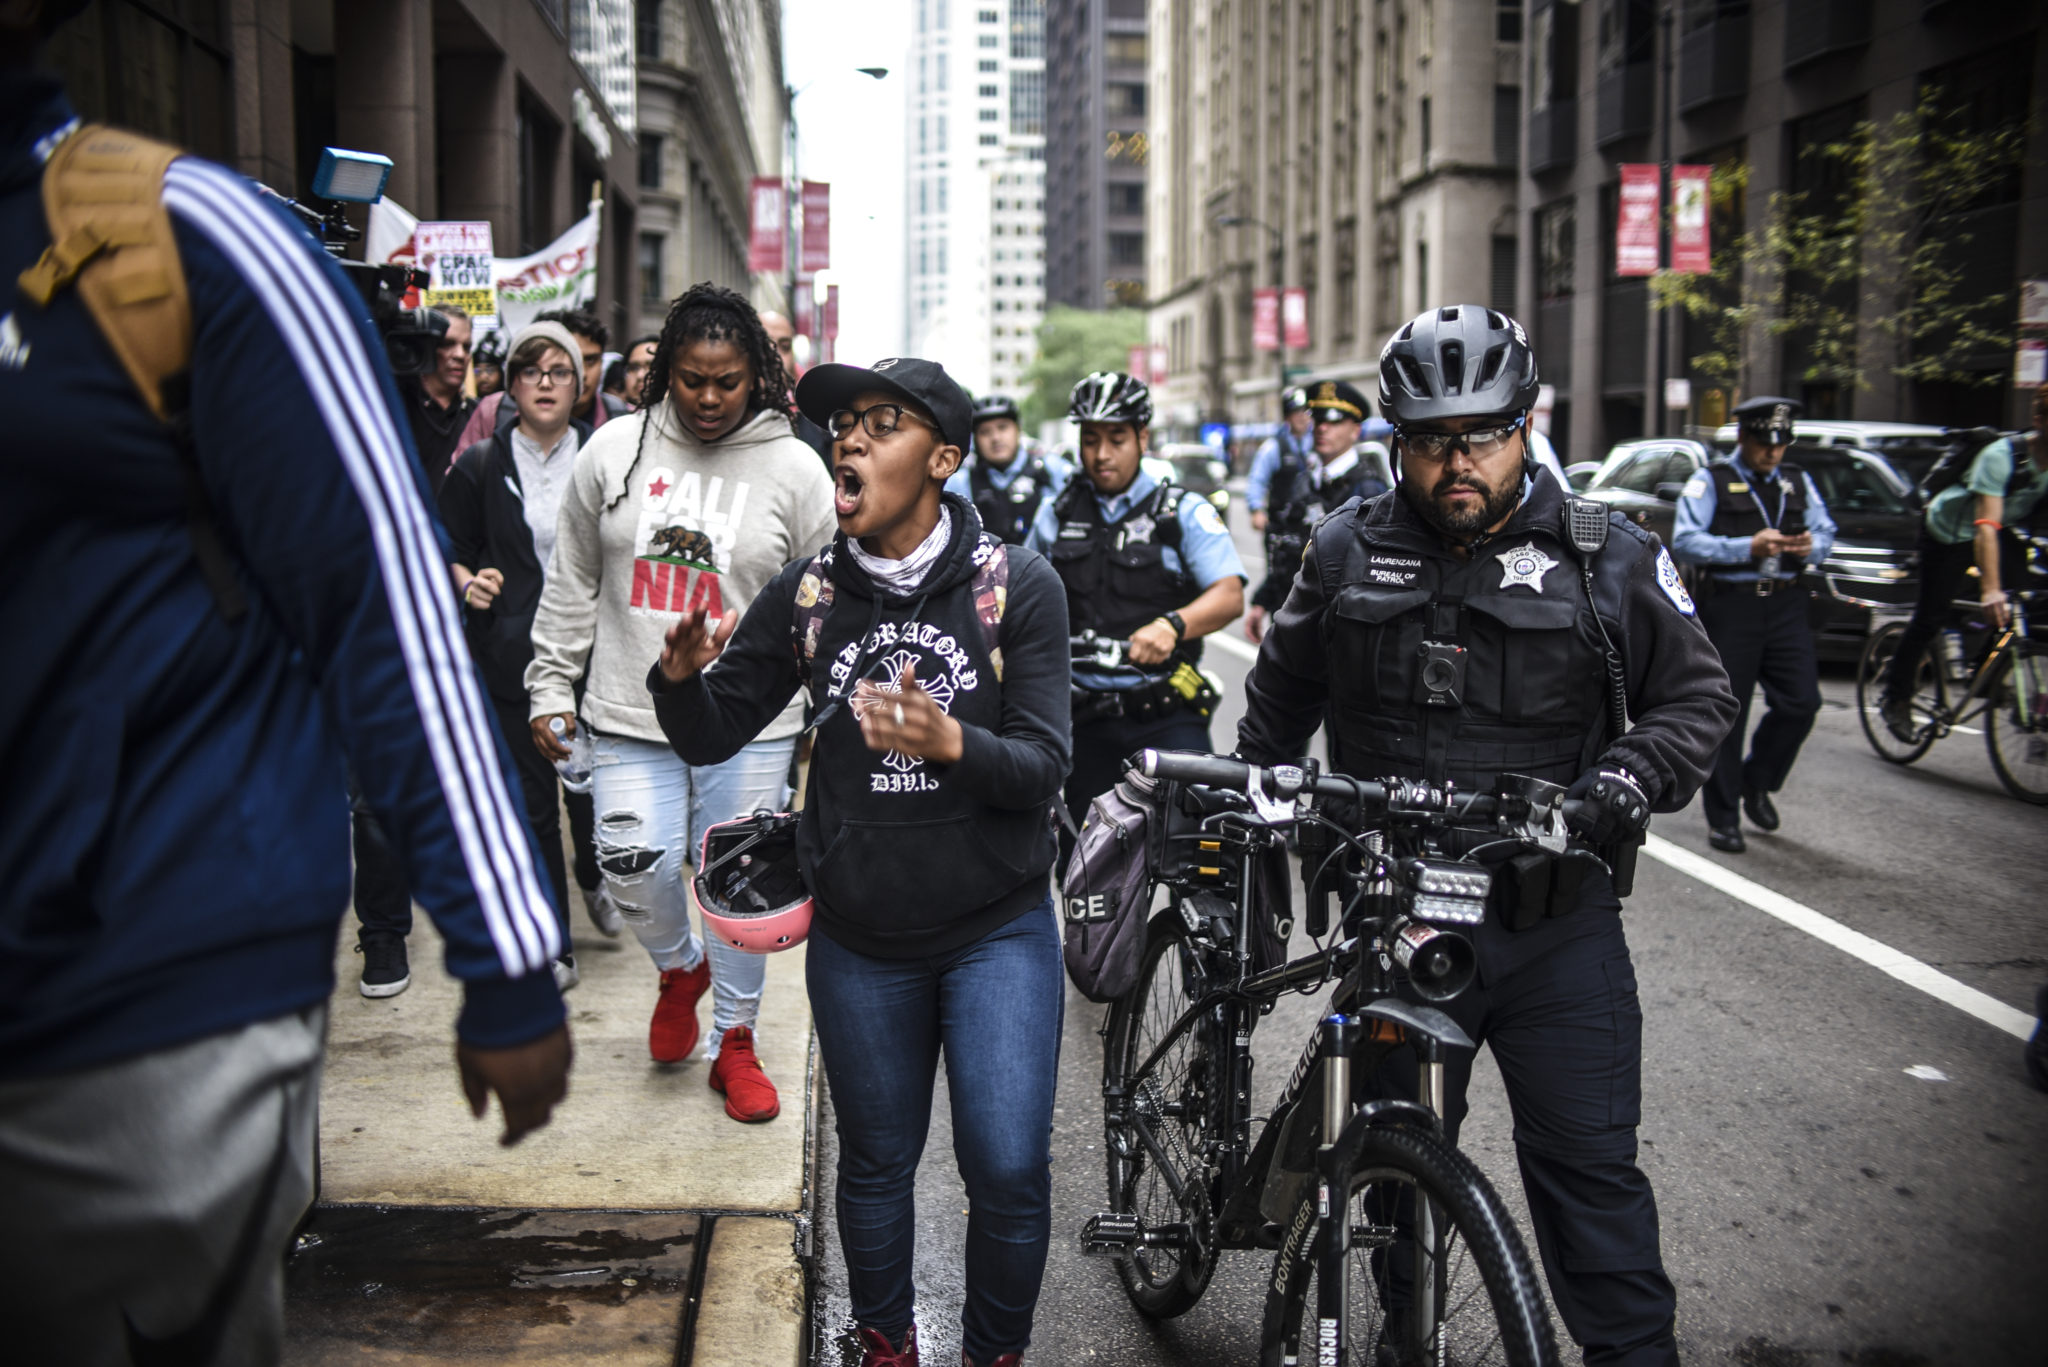 Women were among the leaders of Friday's march after the Van Dyke verdict.